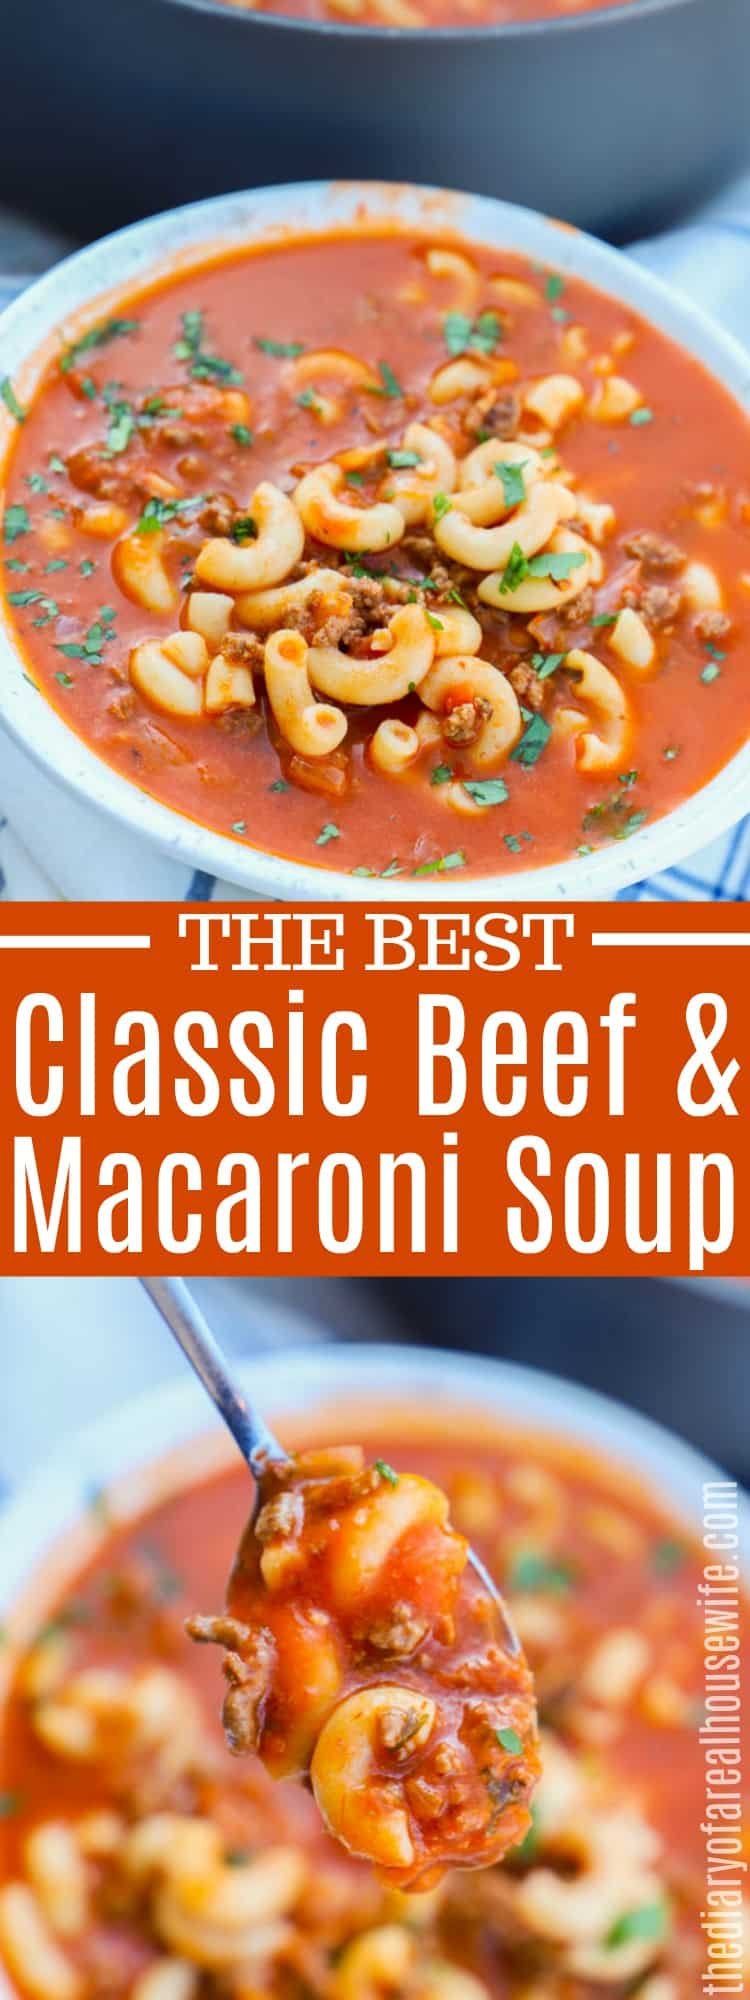 Beef and Macaroni Soup